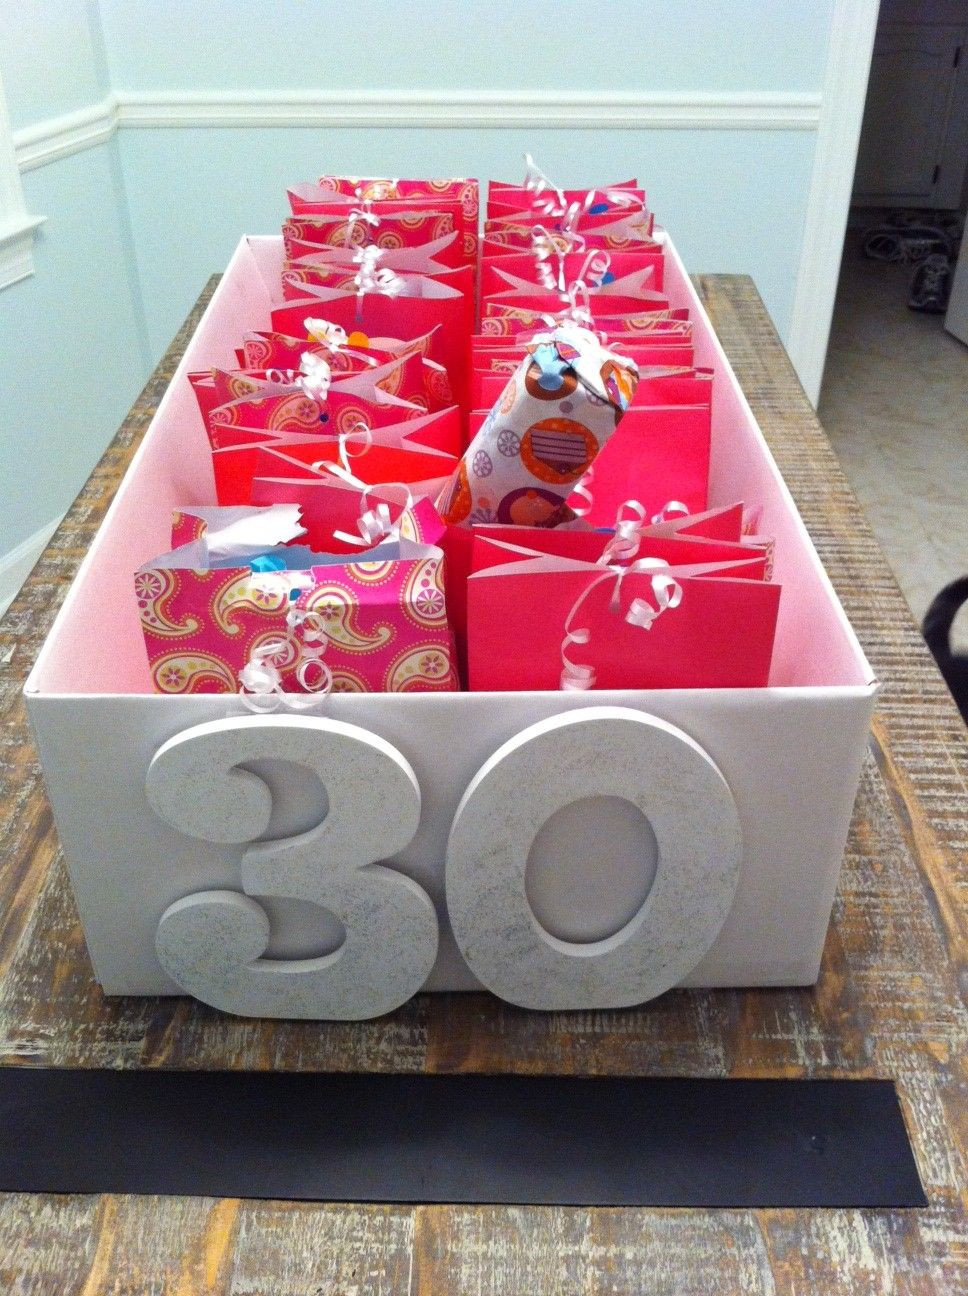 Best ideas about 30 Birthday Present Ideas . Save or Pin 30 presents for the 30 days before a 30th birthday Now.